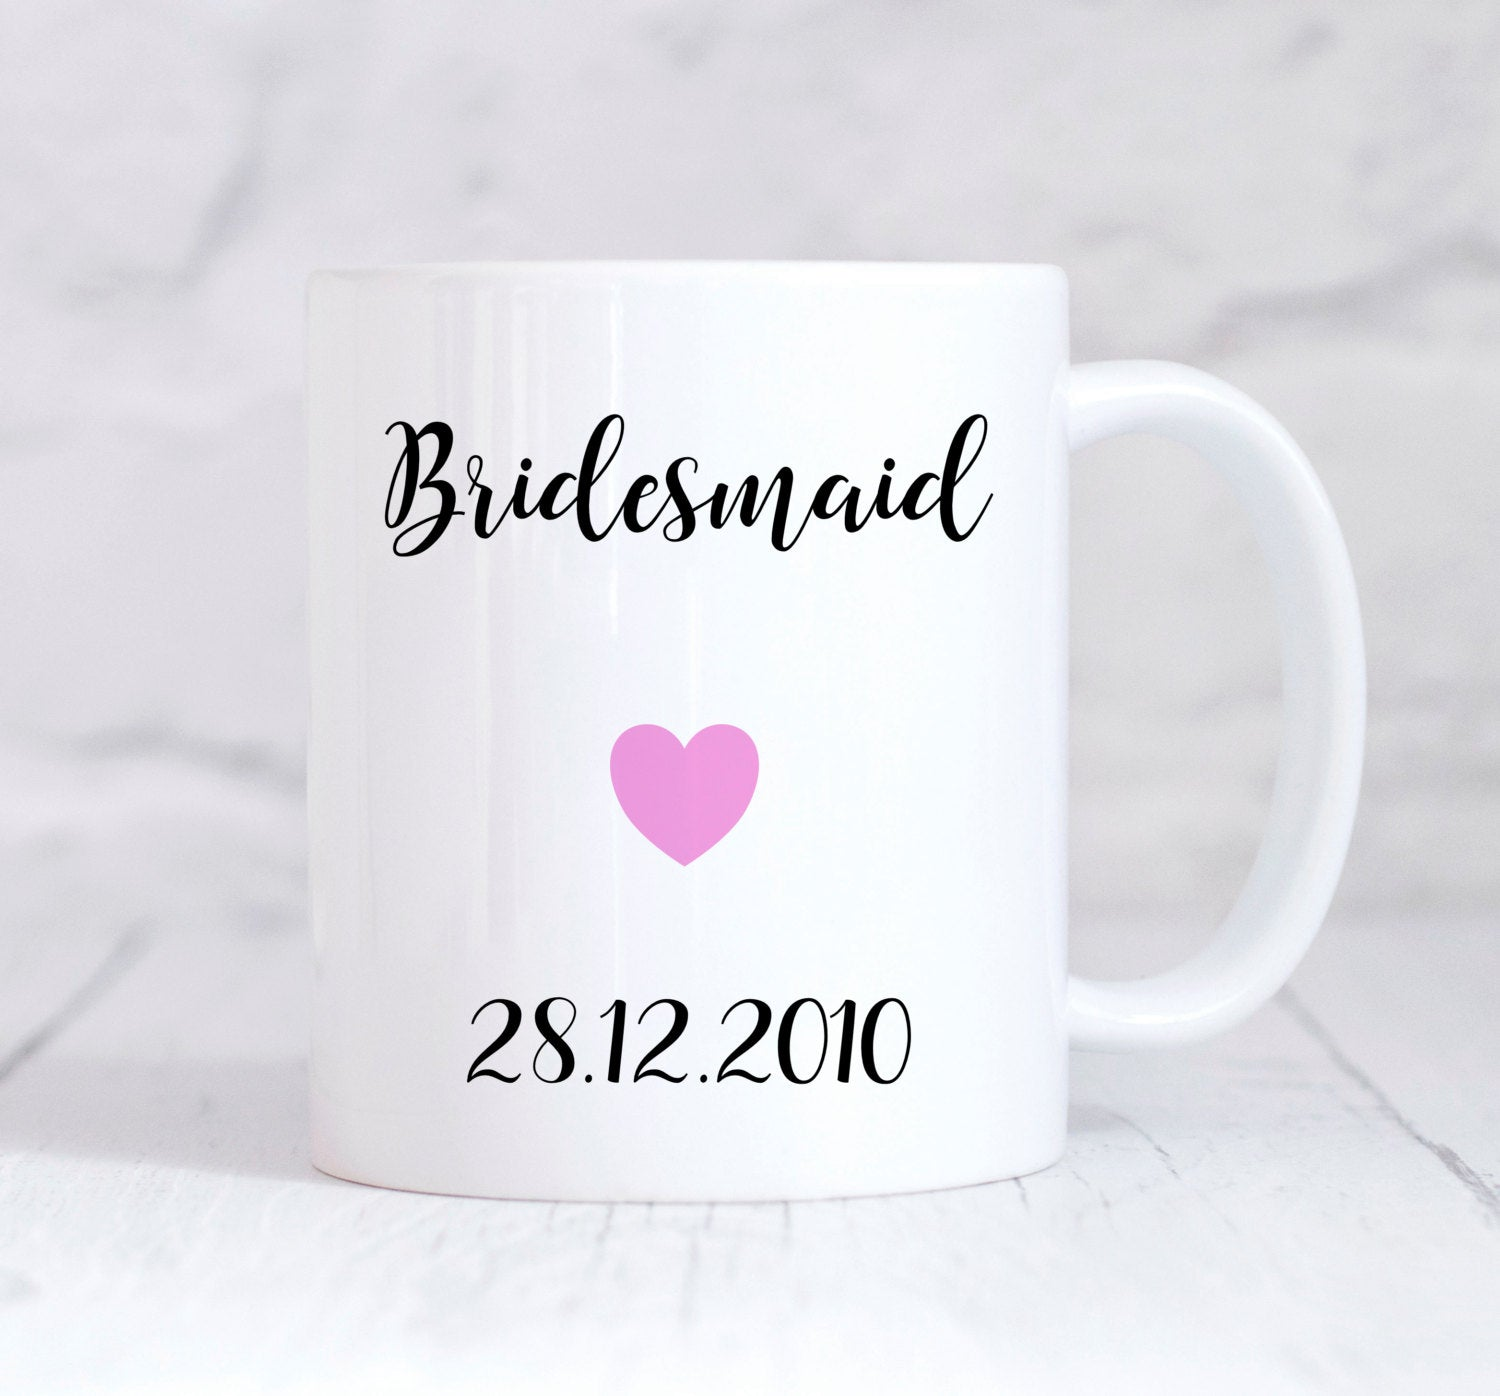 Bridesmaid Mug, Bridesmaid Gift, Wedding Thank You Gift, Personalised Wedding Gift, Personalised Mug, Coffee Mug, Tea Mug, Cup